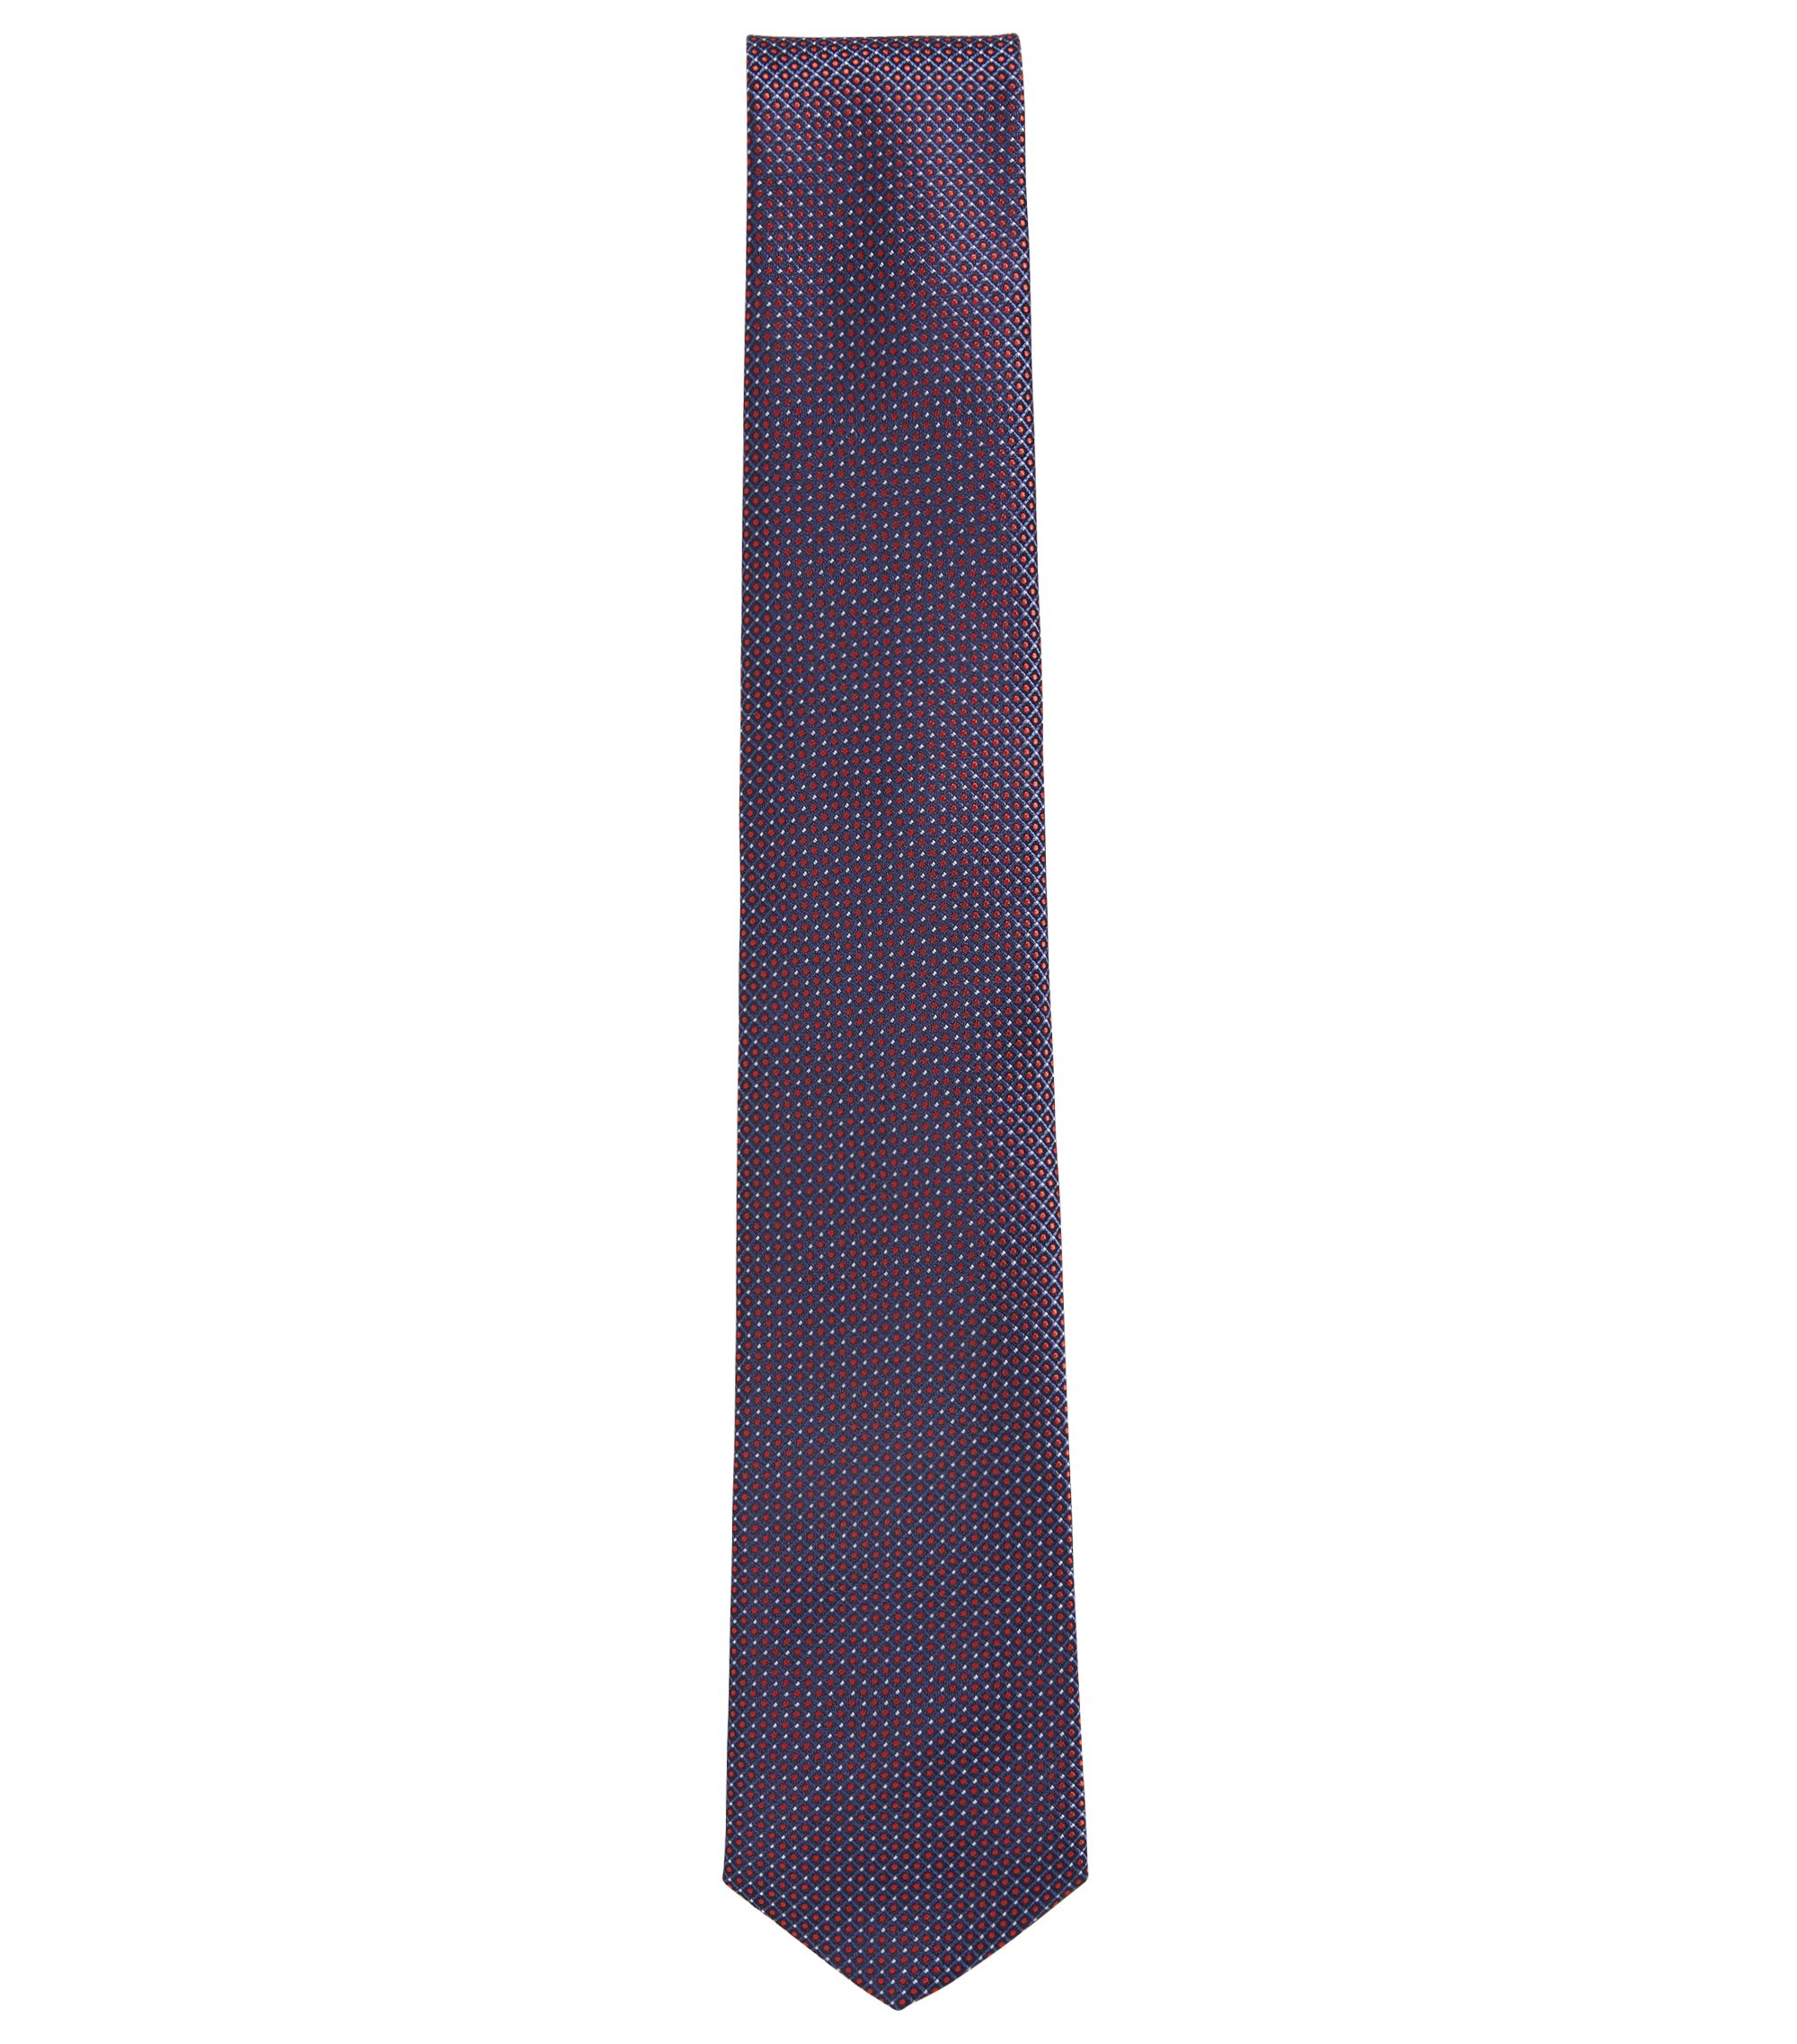 Traveler Dotted Italian Silk Tie, Dark pink